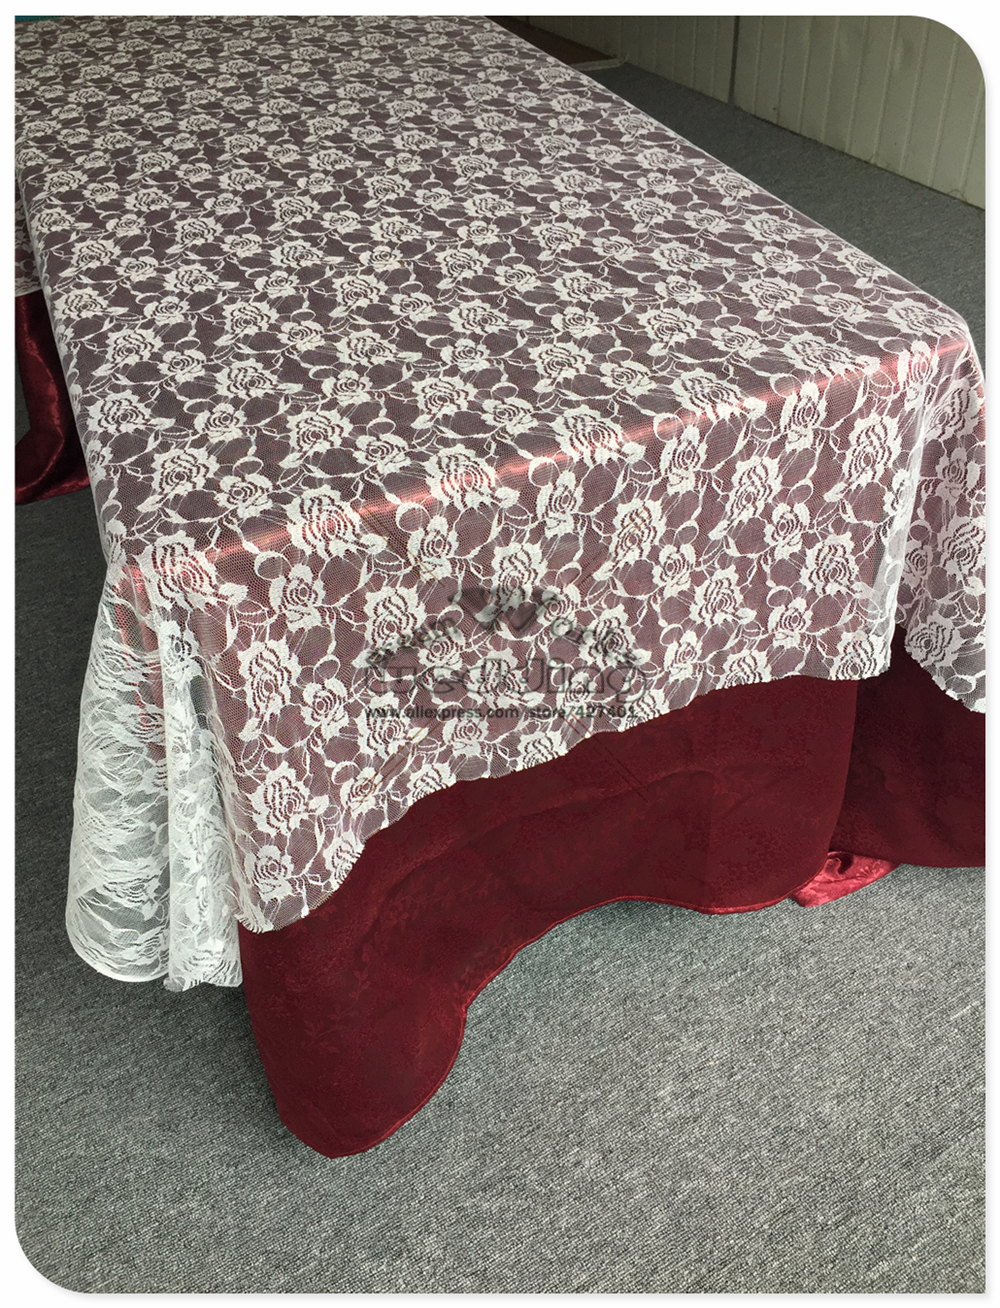 2017 NEW White Lace Table Cloth Rectangular Tablecloths For Wedding Banquet Hotel Table Covers Party Supplies Home Textile & 2017 NEW White Lace Table Cloth Rectangular Tablecloths For Wedding ...